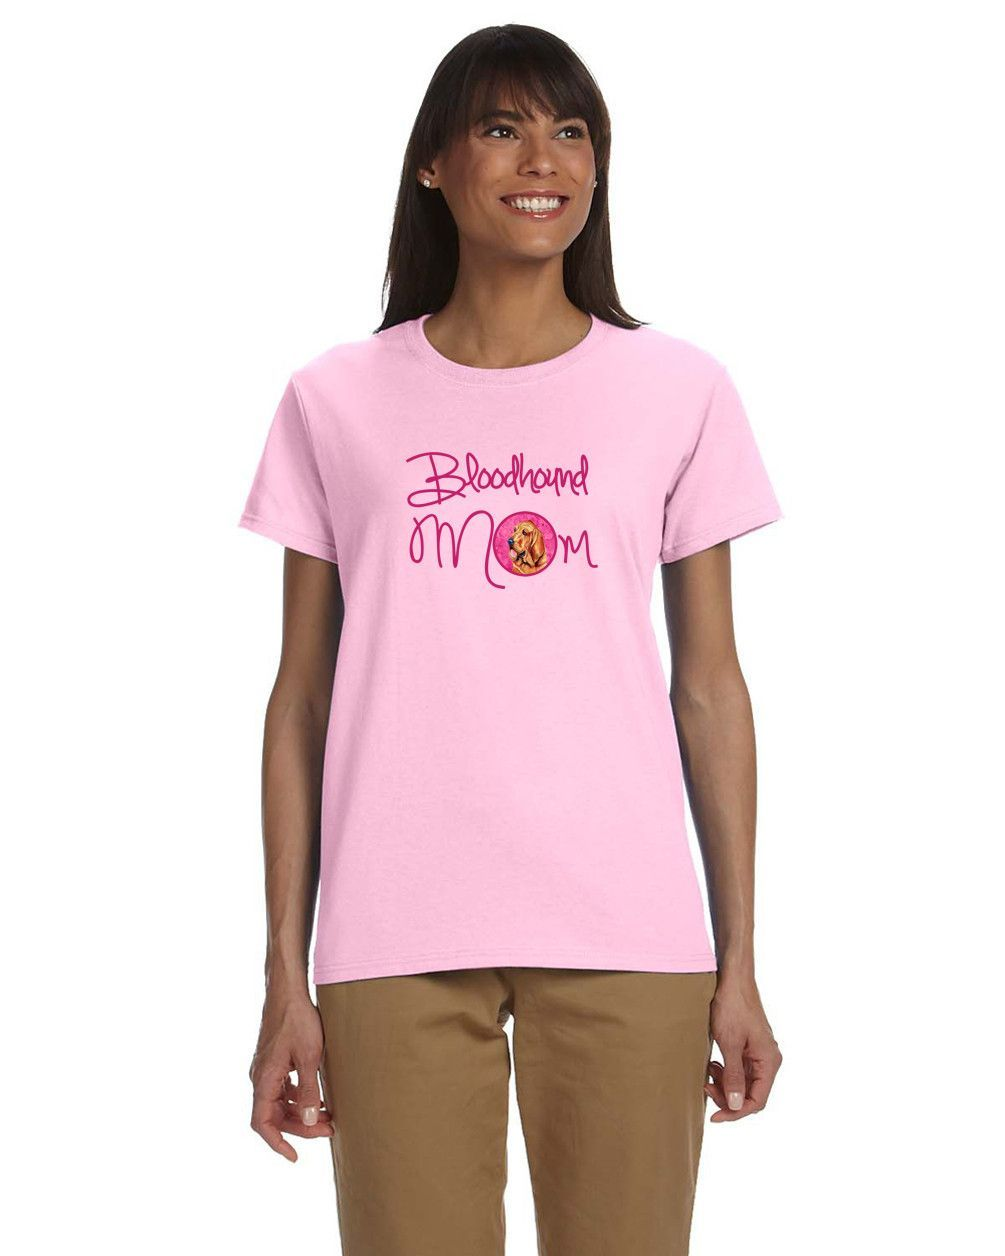 Pink Bloodhound Mom T-shirt Ladies Cut Short Sleeve Large LH9376PK-978-L